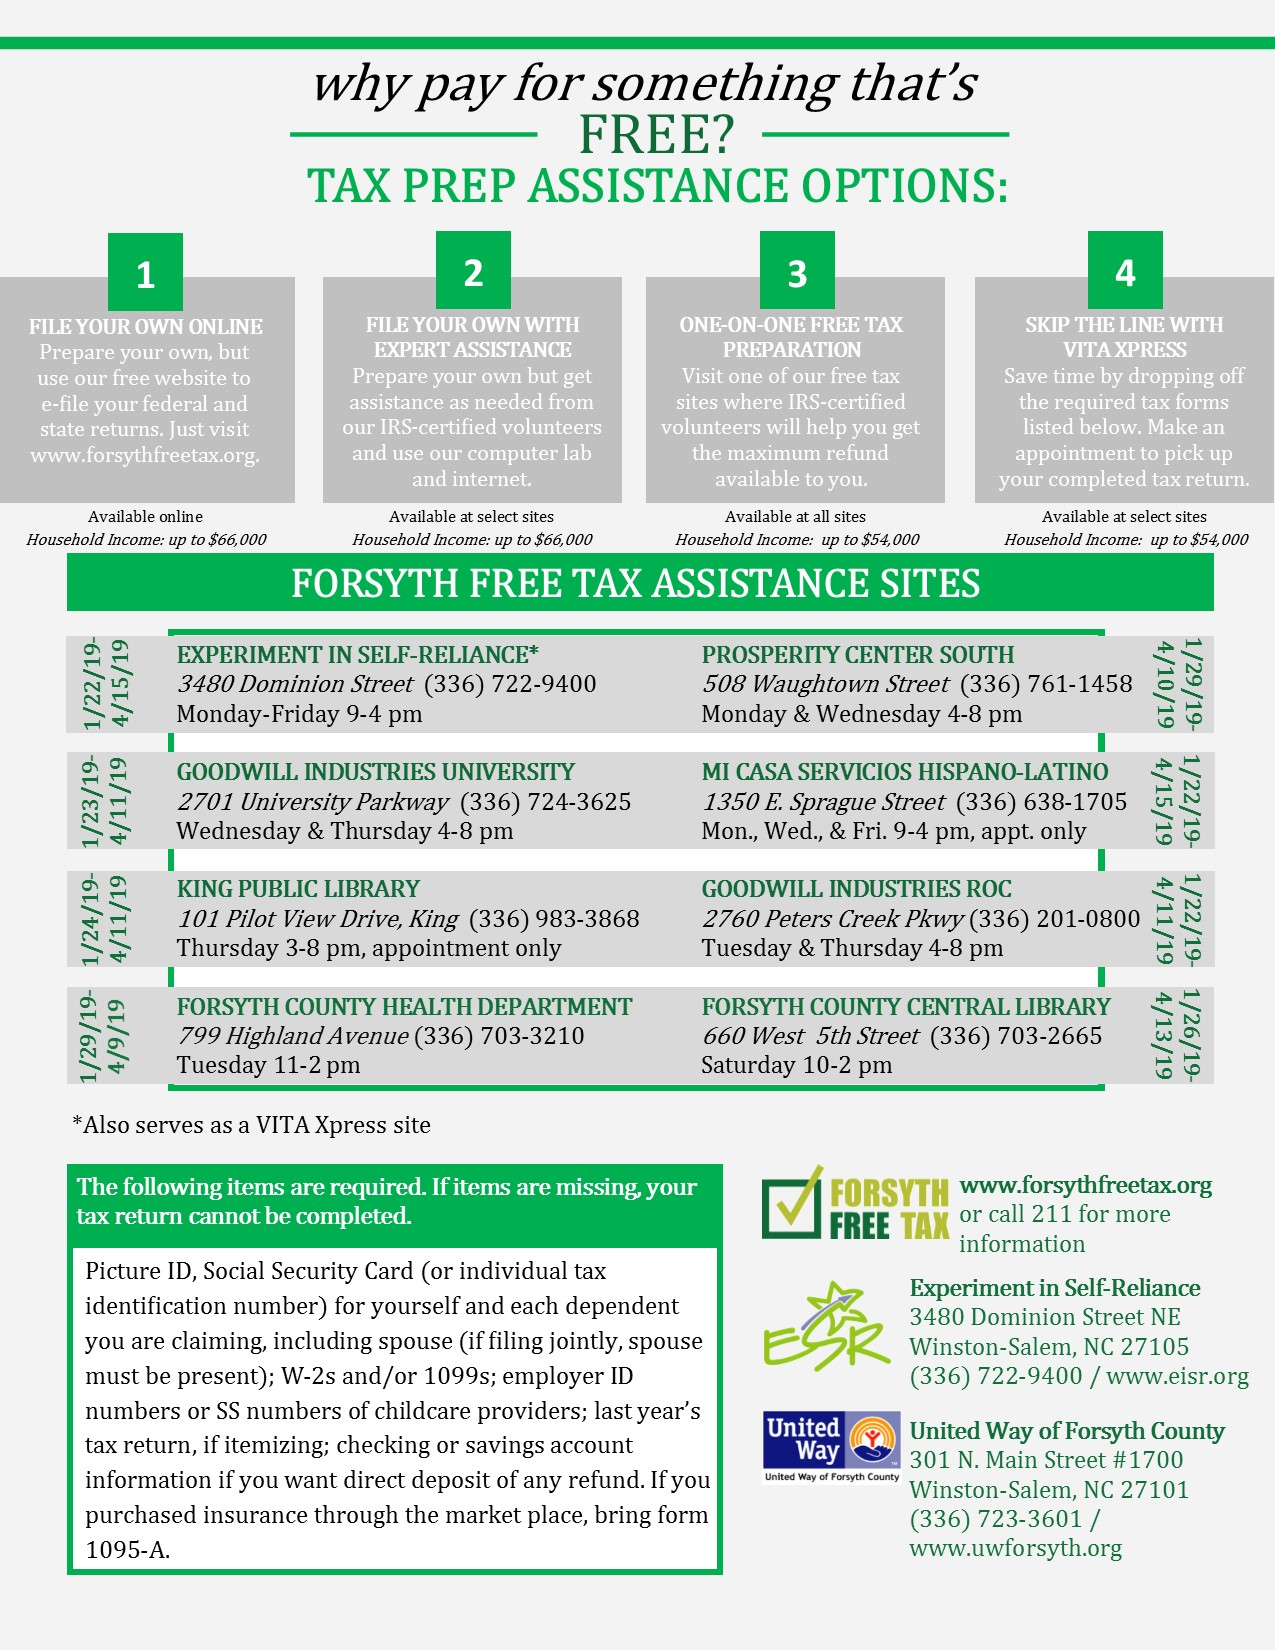 Experiment in Self-Reliance | Forsyth Free Tax Preparation